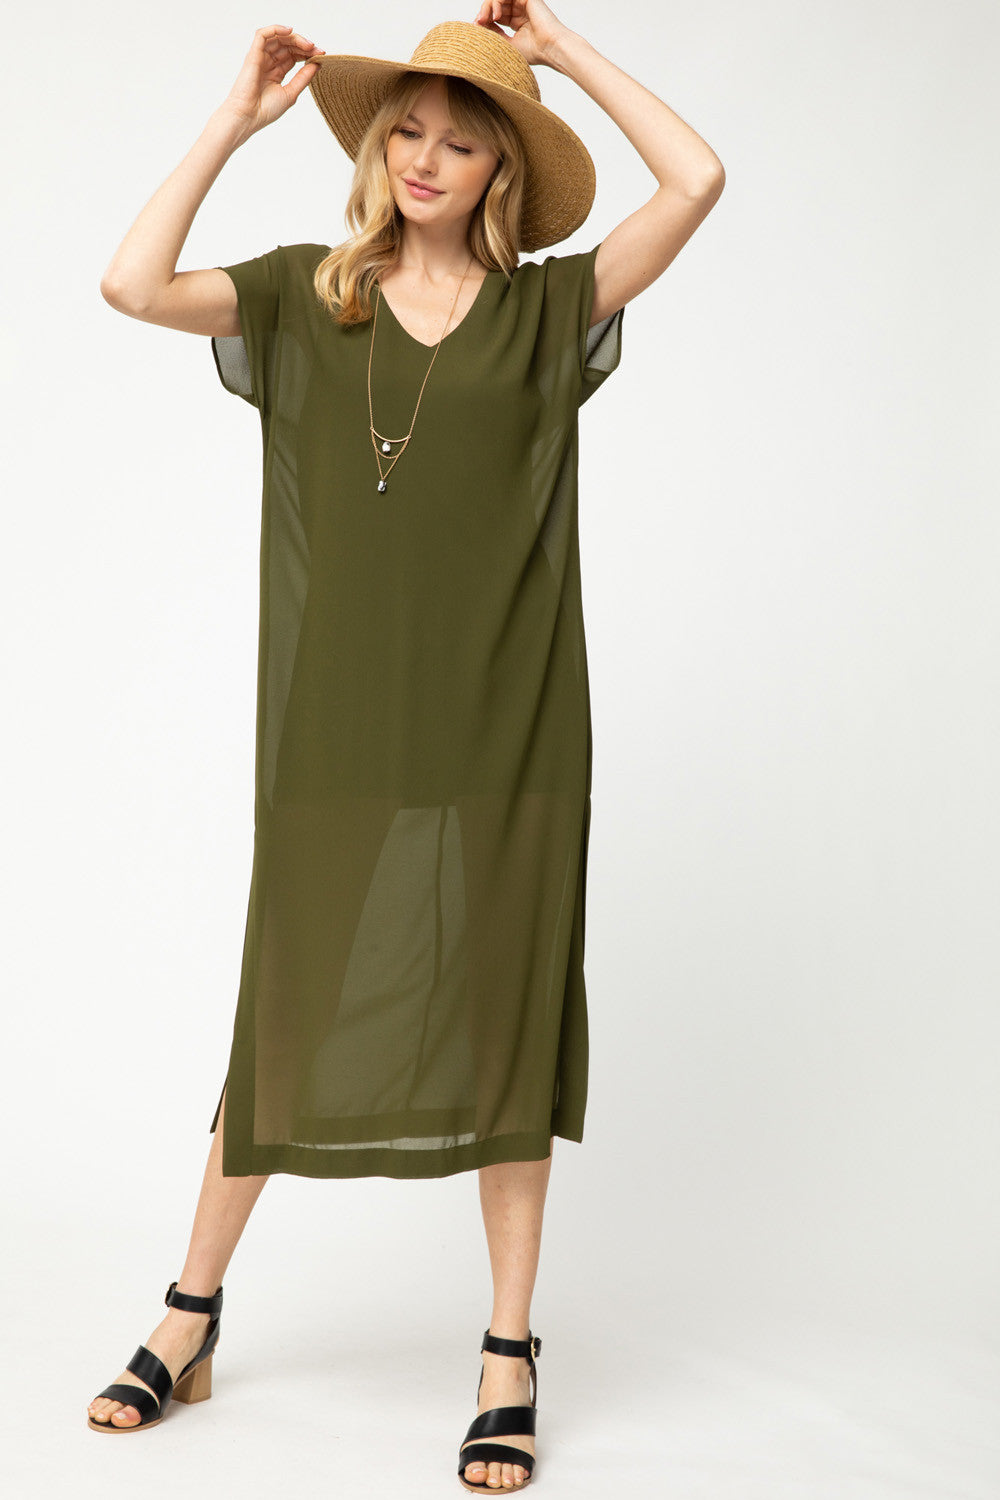 LAST CALL SIZE L | Solid Olive V-Neck Maxi Dress